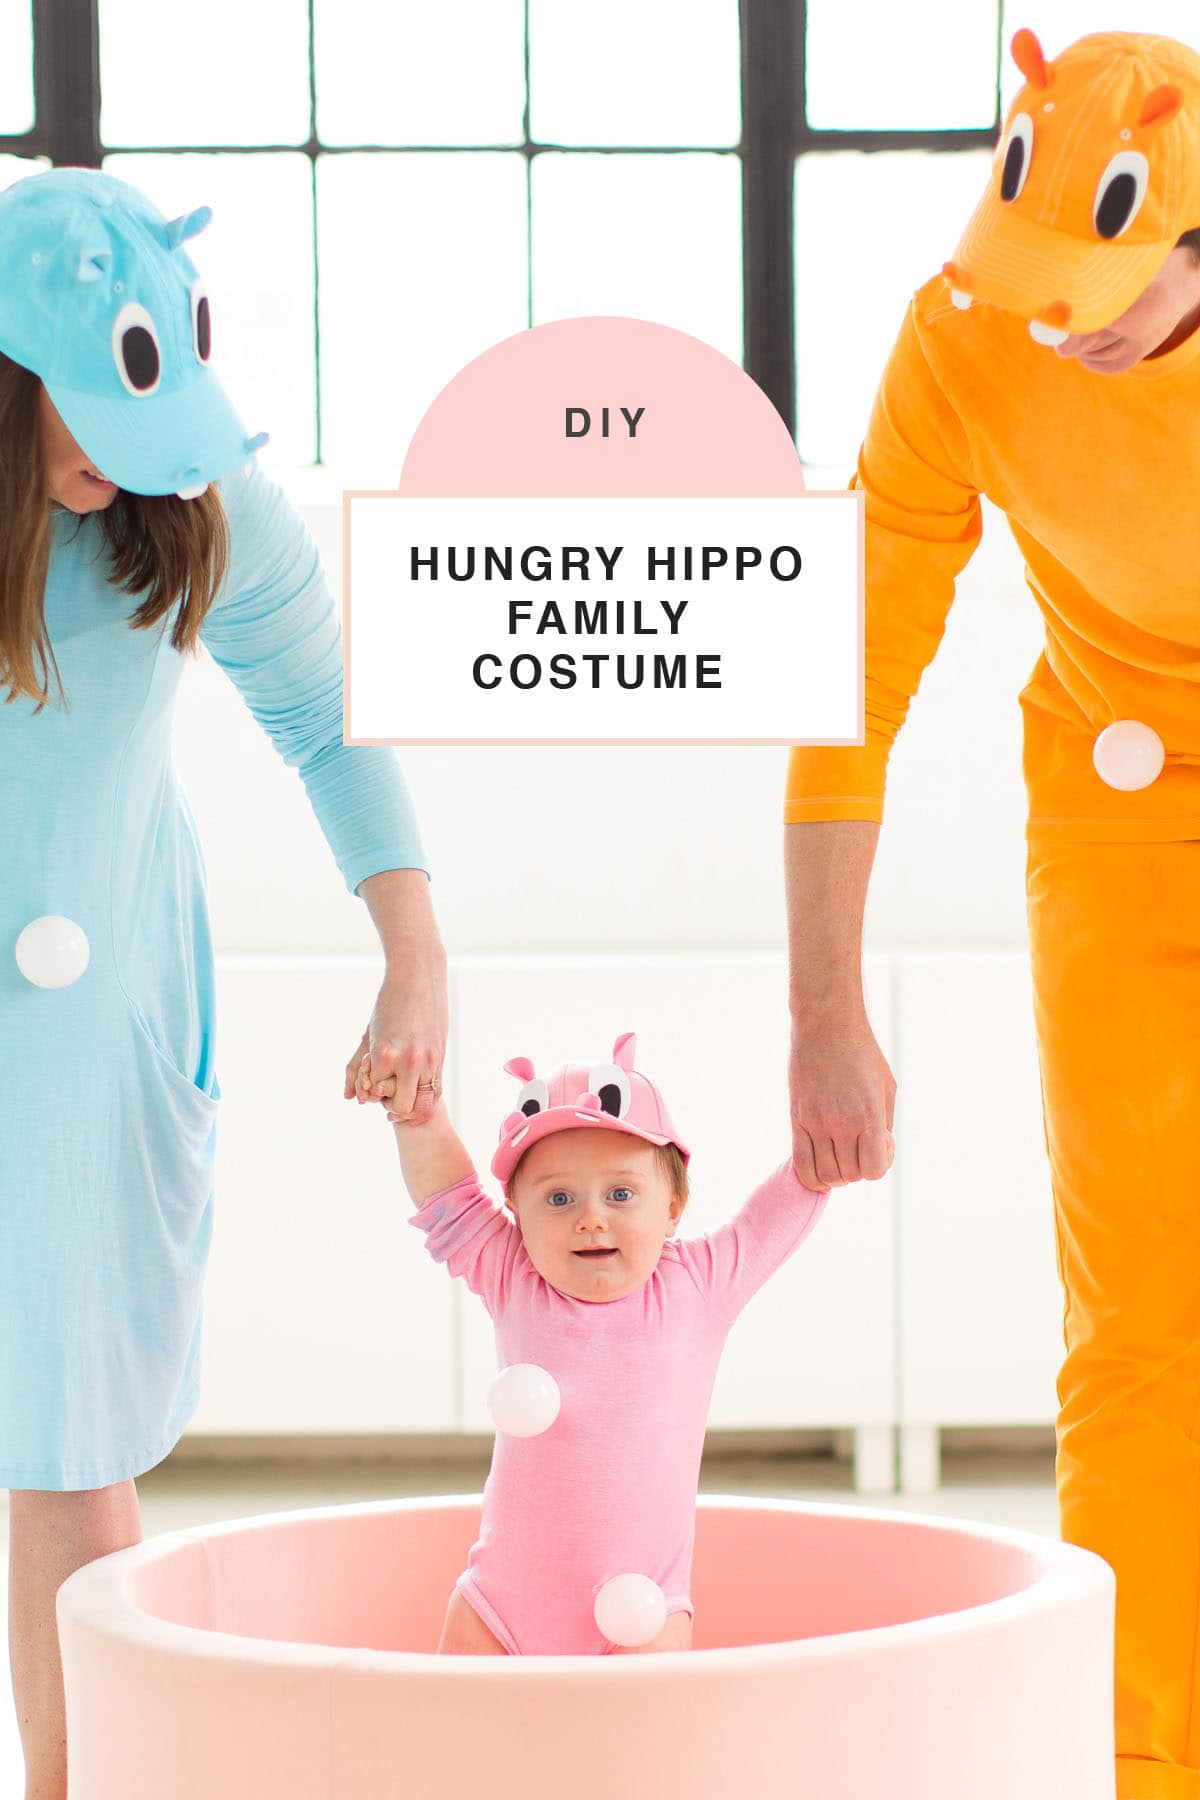 family costume idea! -- loading up the crazy amount of baby gear! Our Family DIY Hungry Hippos Costume Idea -- by Top Houston blogger Ashley Rose of Sugar and Cloth -- #costumes #halloween #ideas #family #familycostume #diy